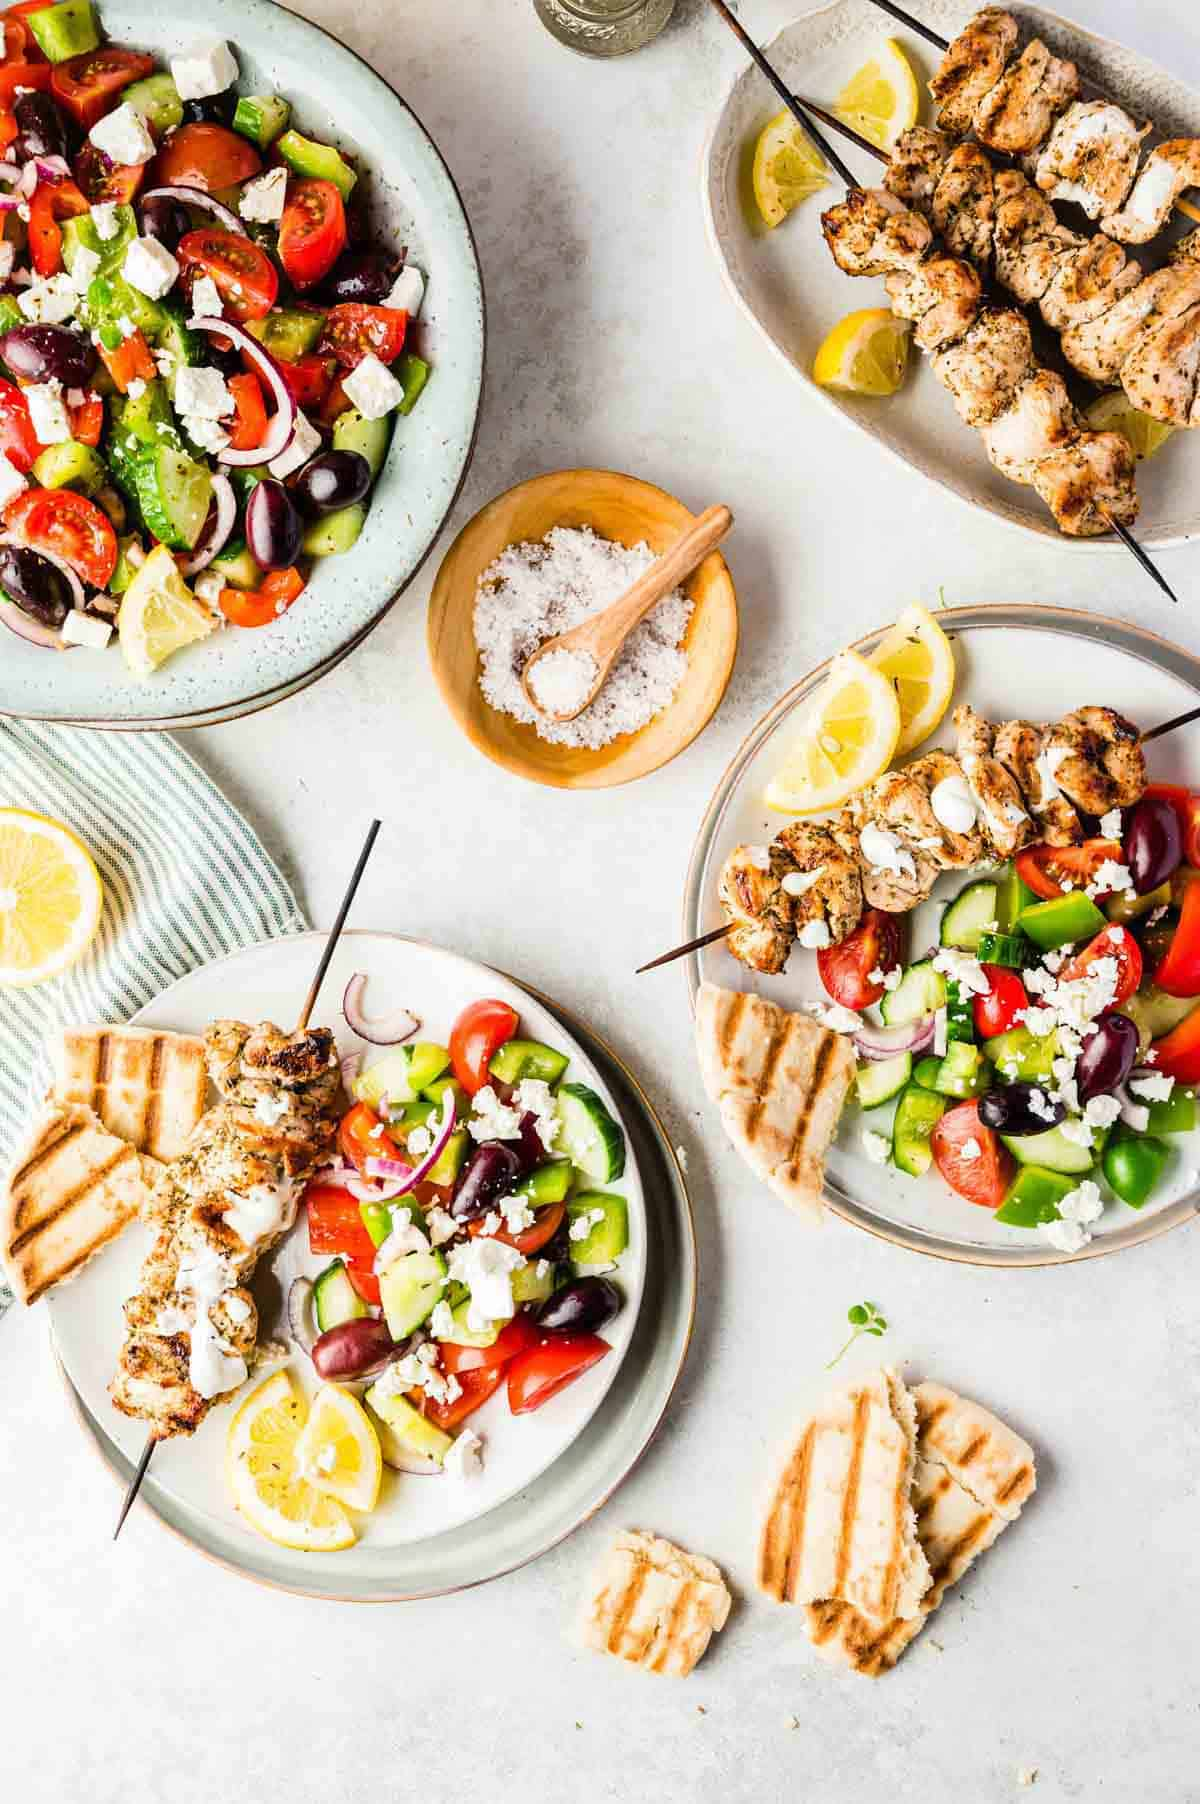 Two Helpings of Greek Salad, Chicken Kebabs and Grilled Bread Beside a Full Serving Bowl and Platter